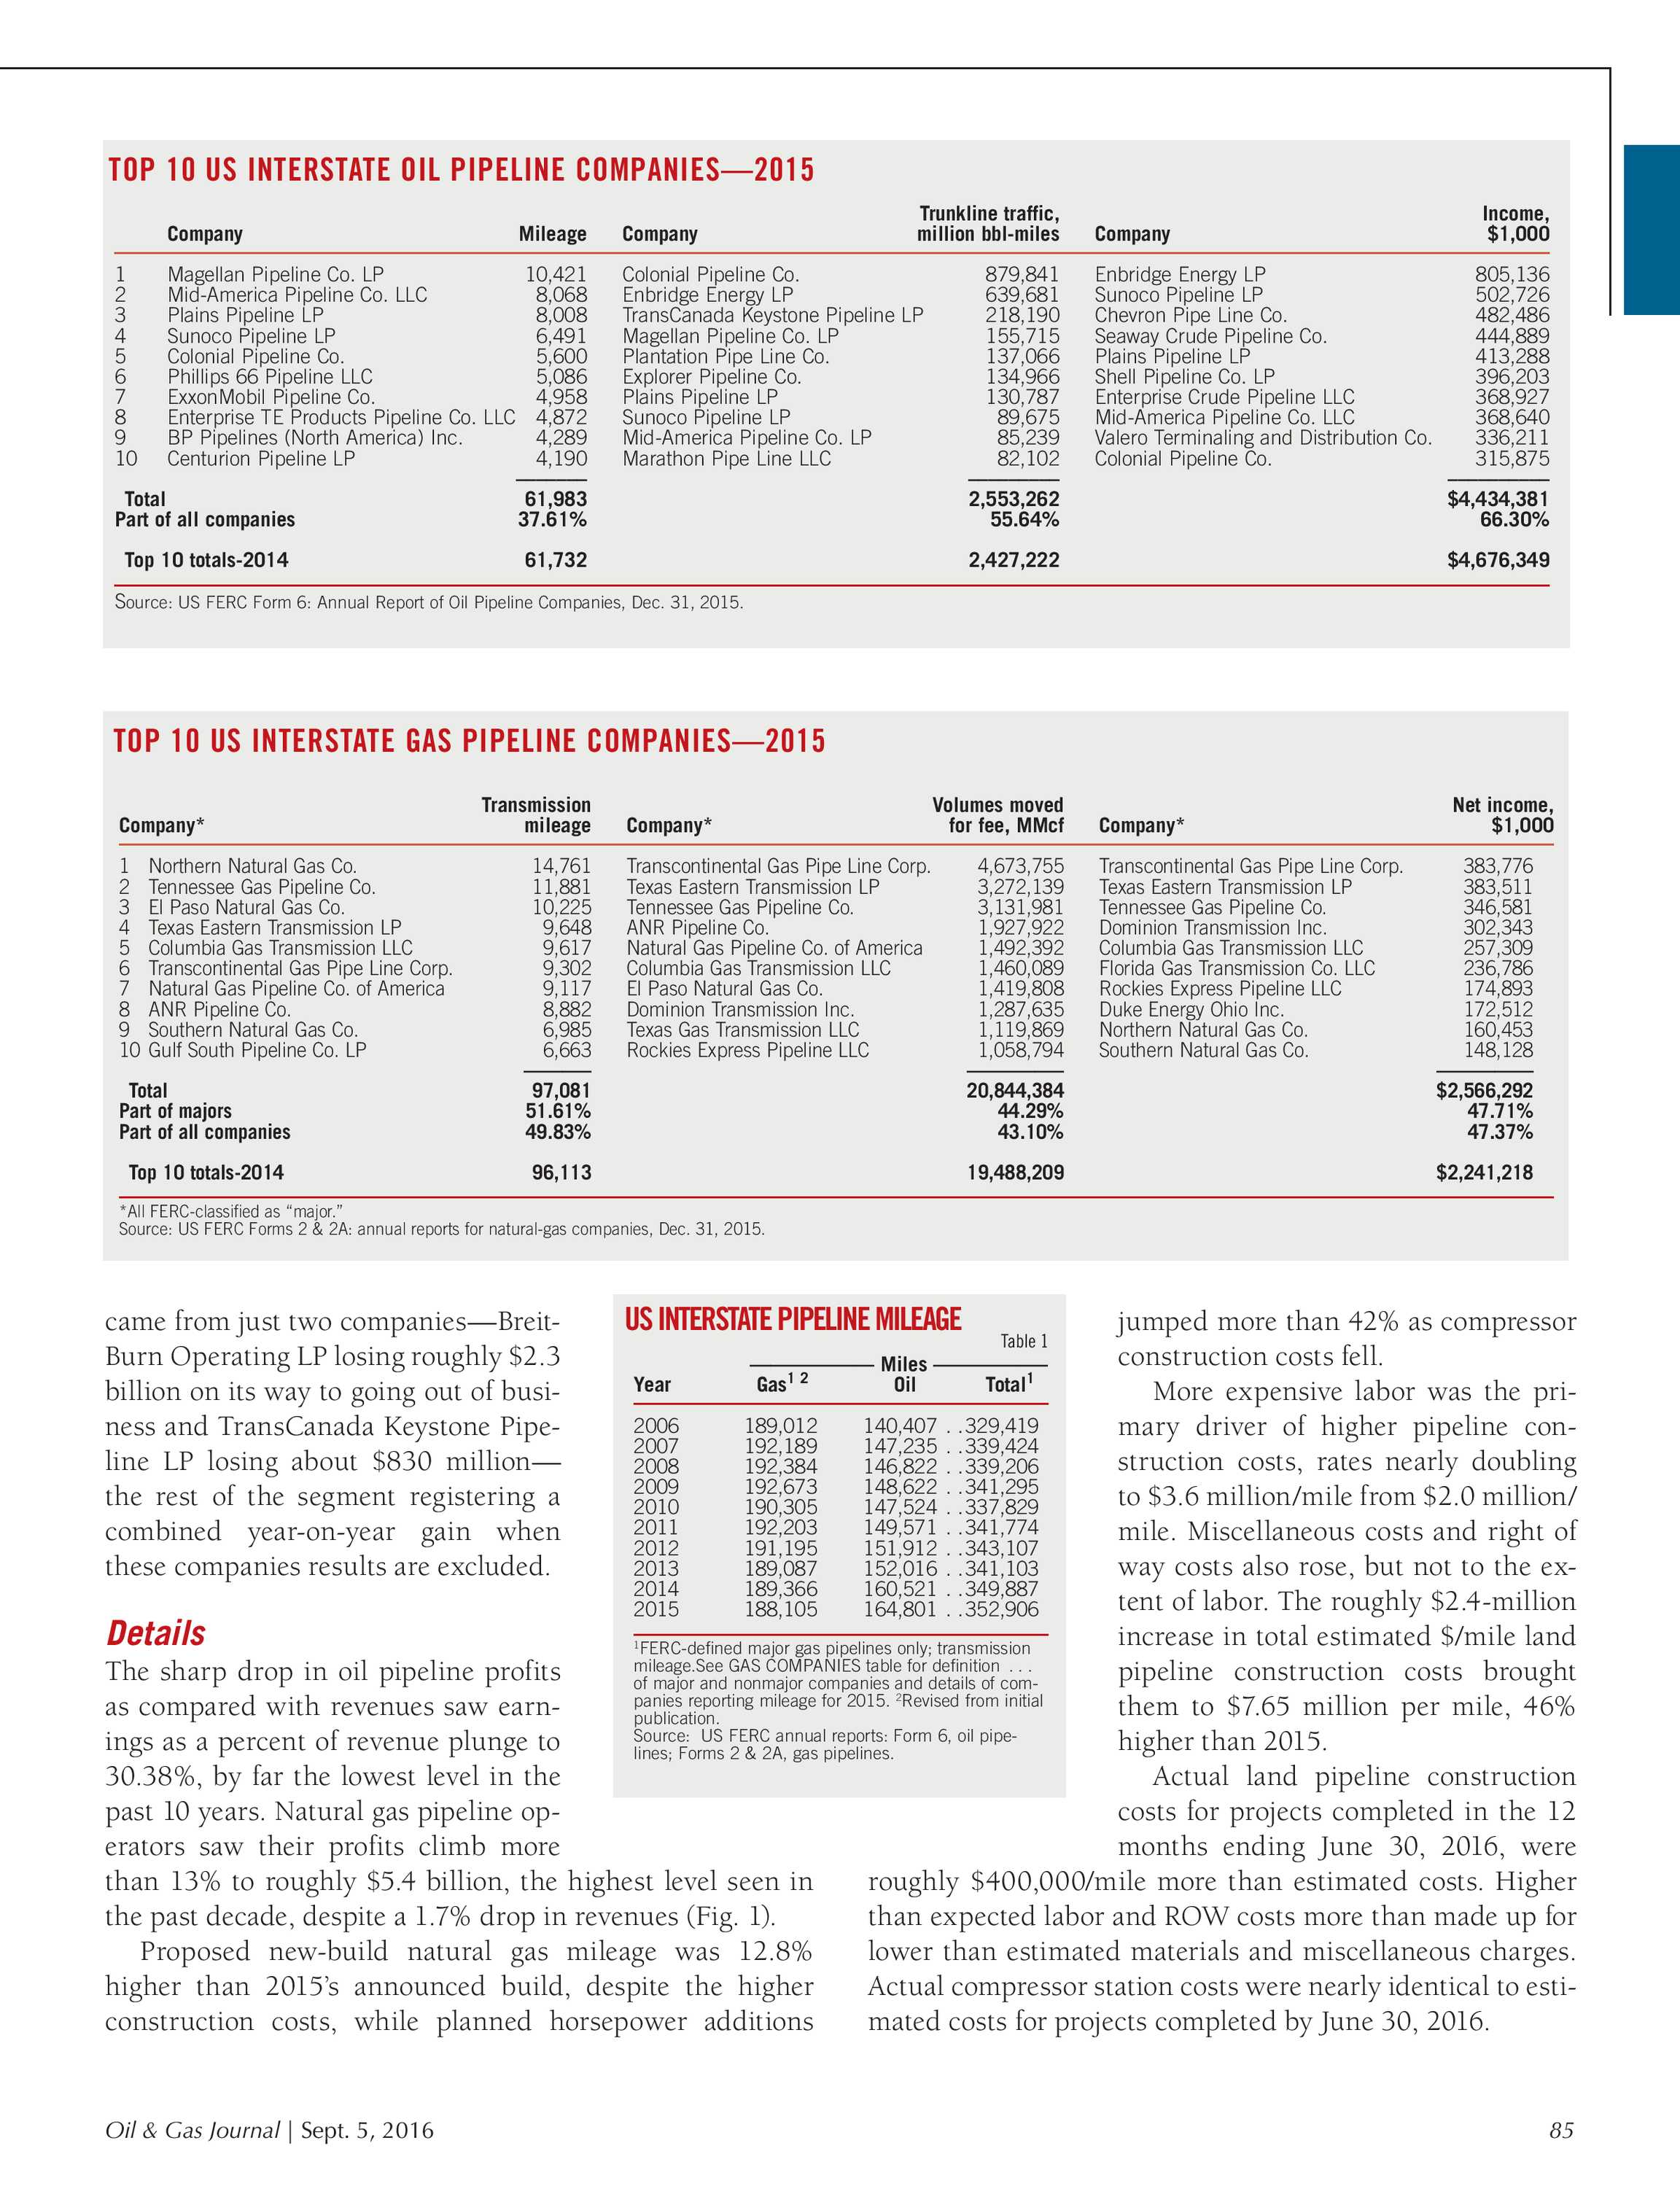 Oil & Gas Journal - September 5, 2016 - page 85